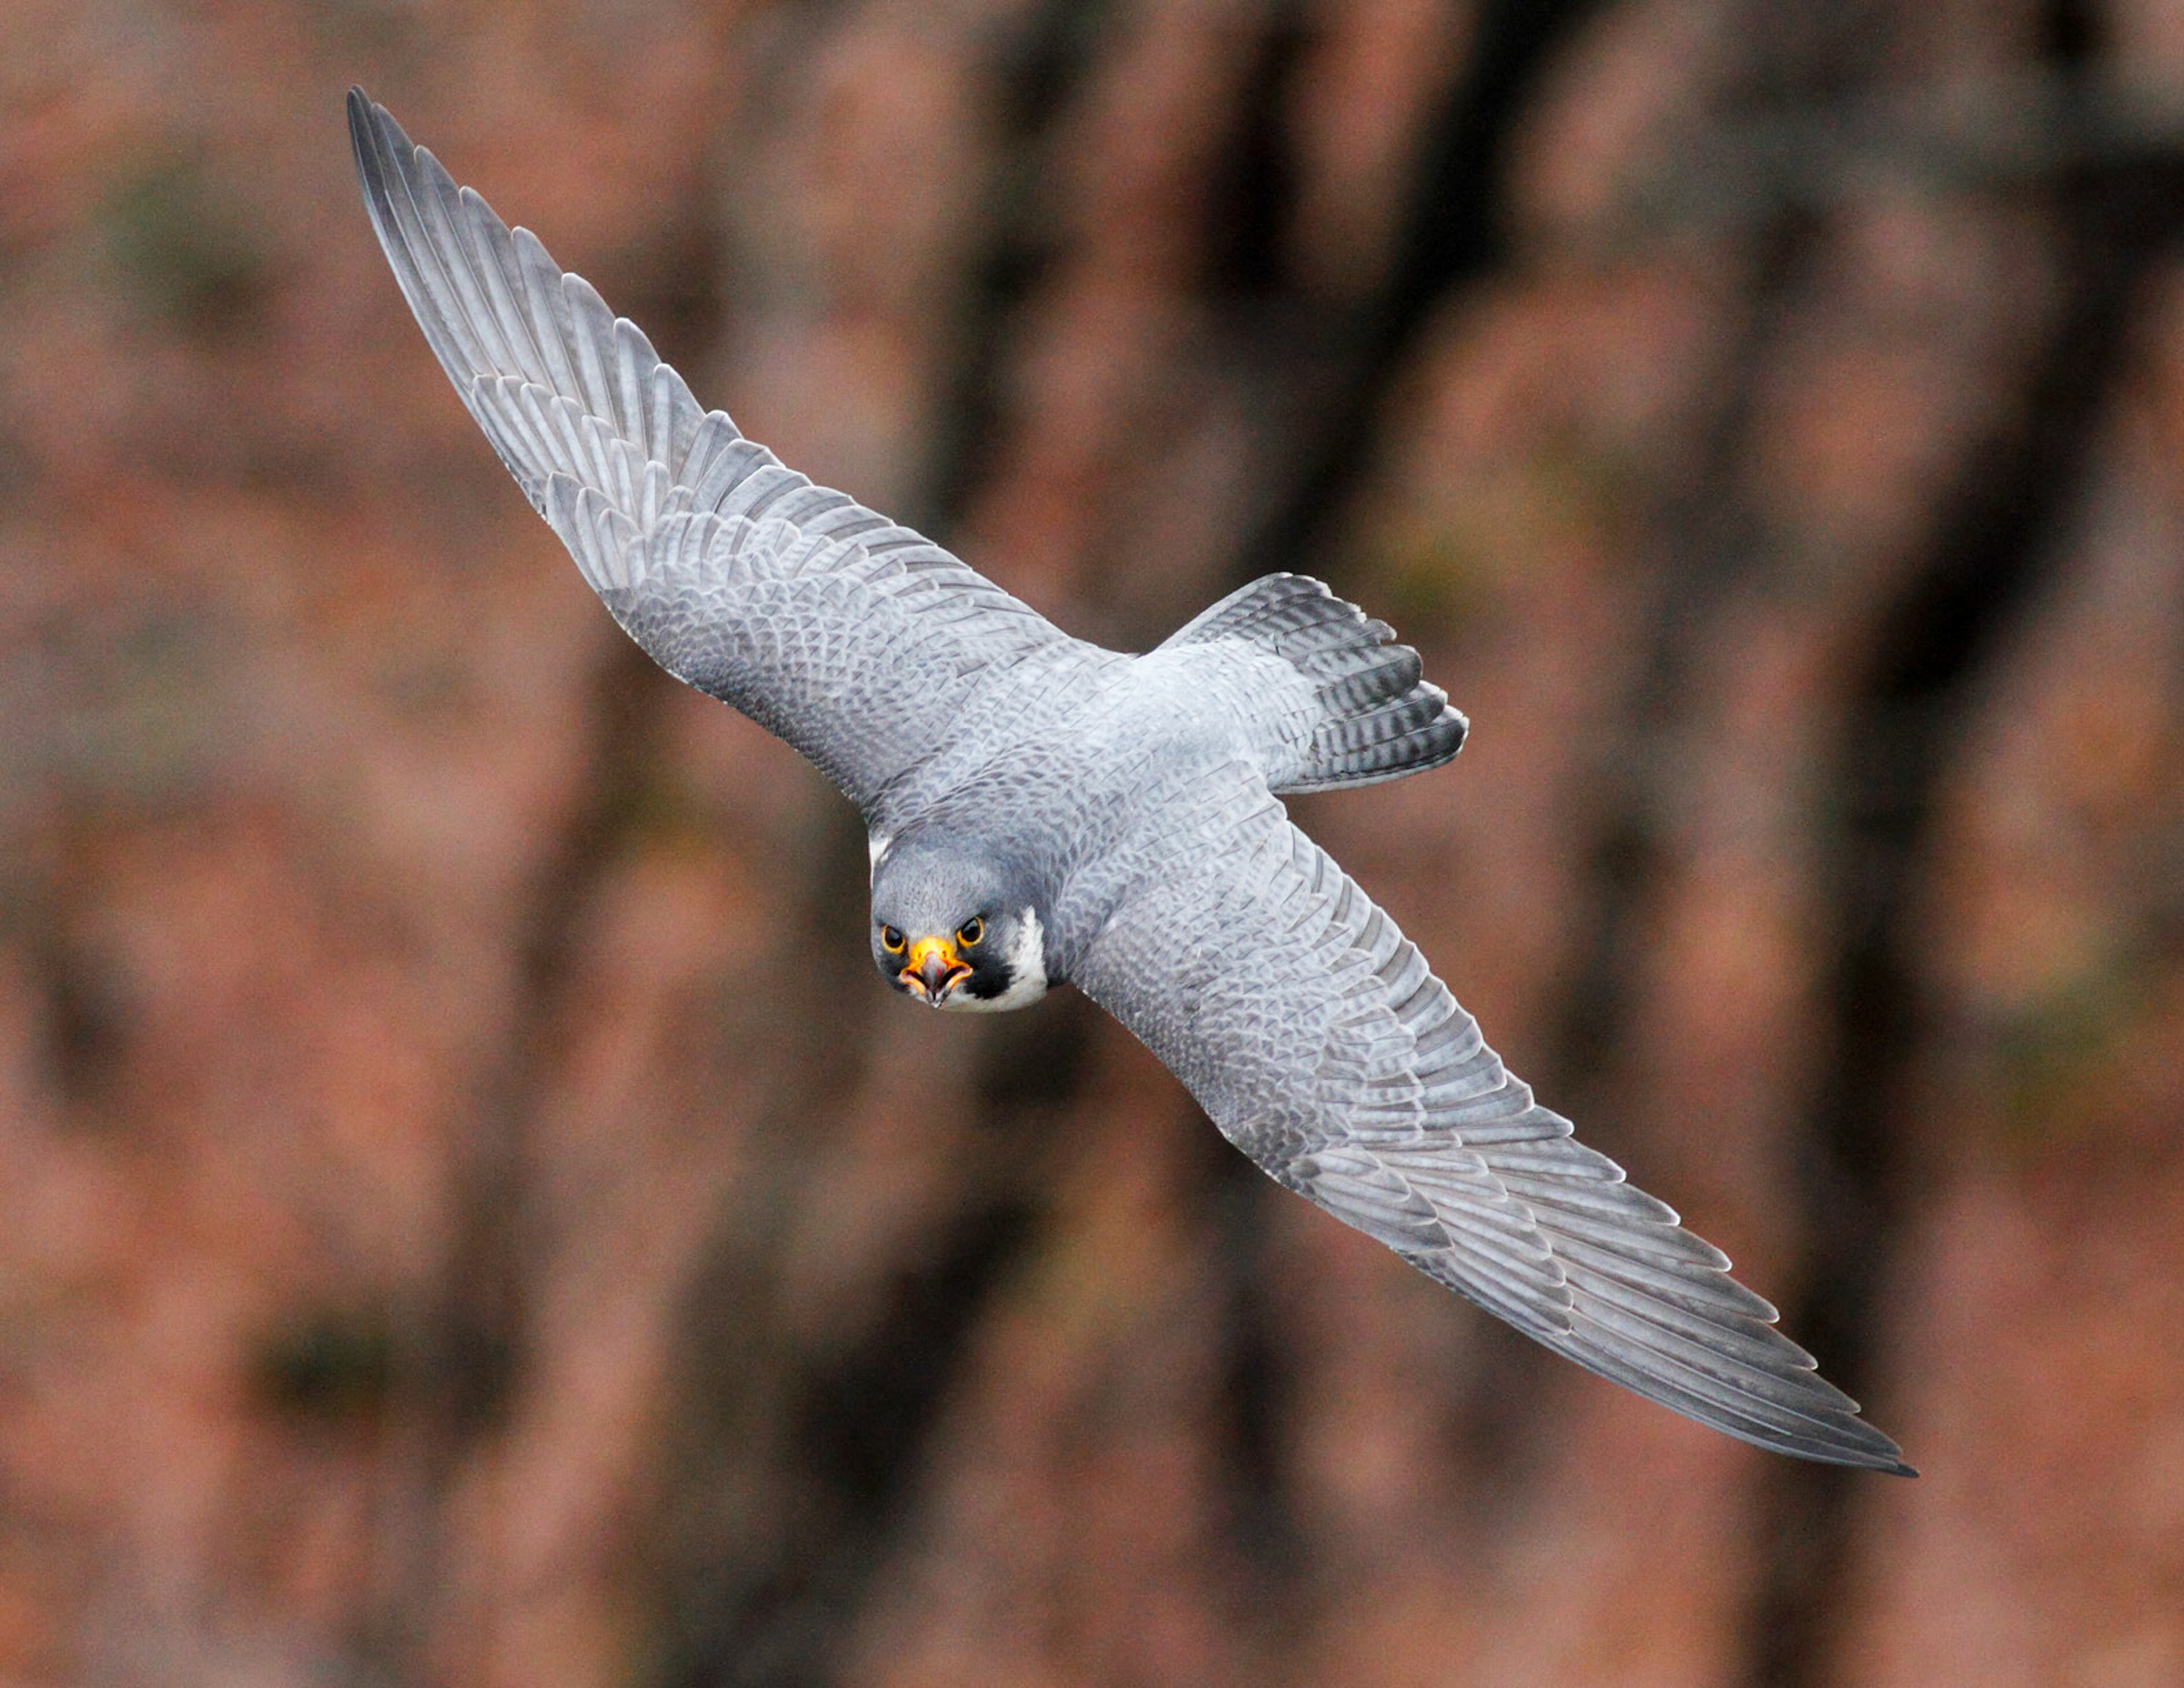 Peregrine Falcon. Photo: Steven Sachs/APA.